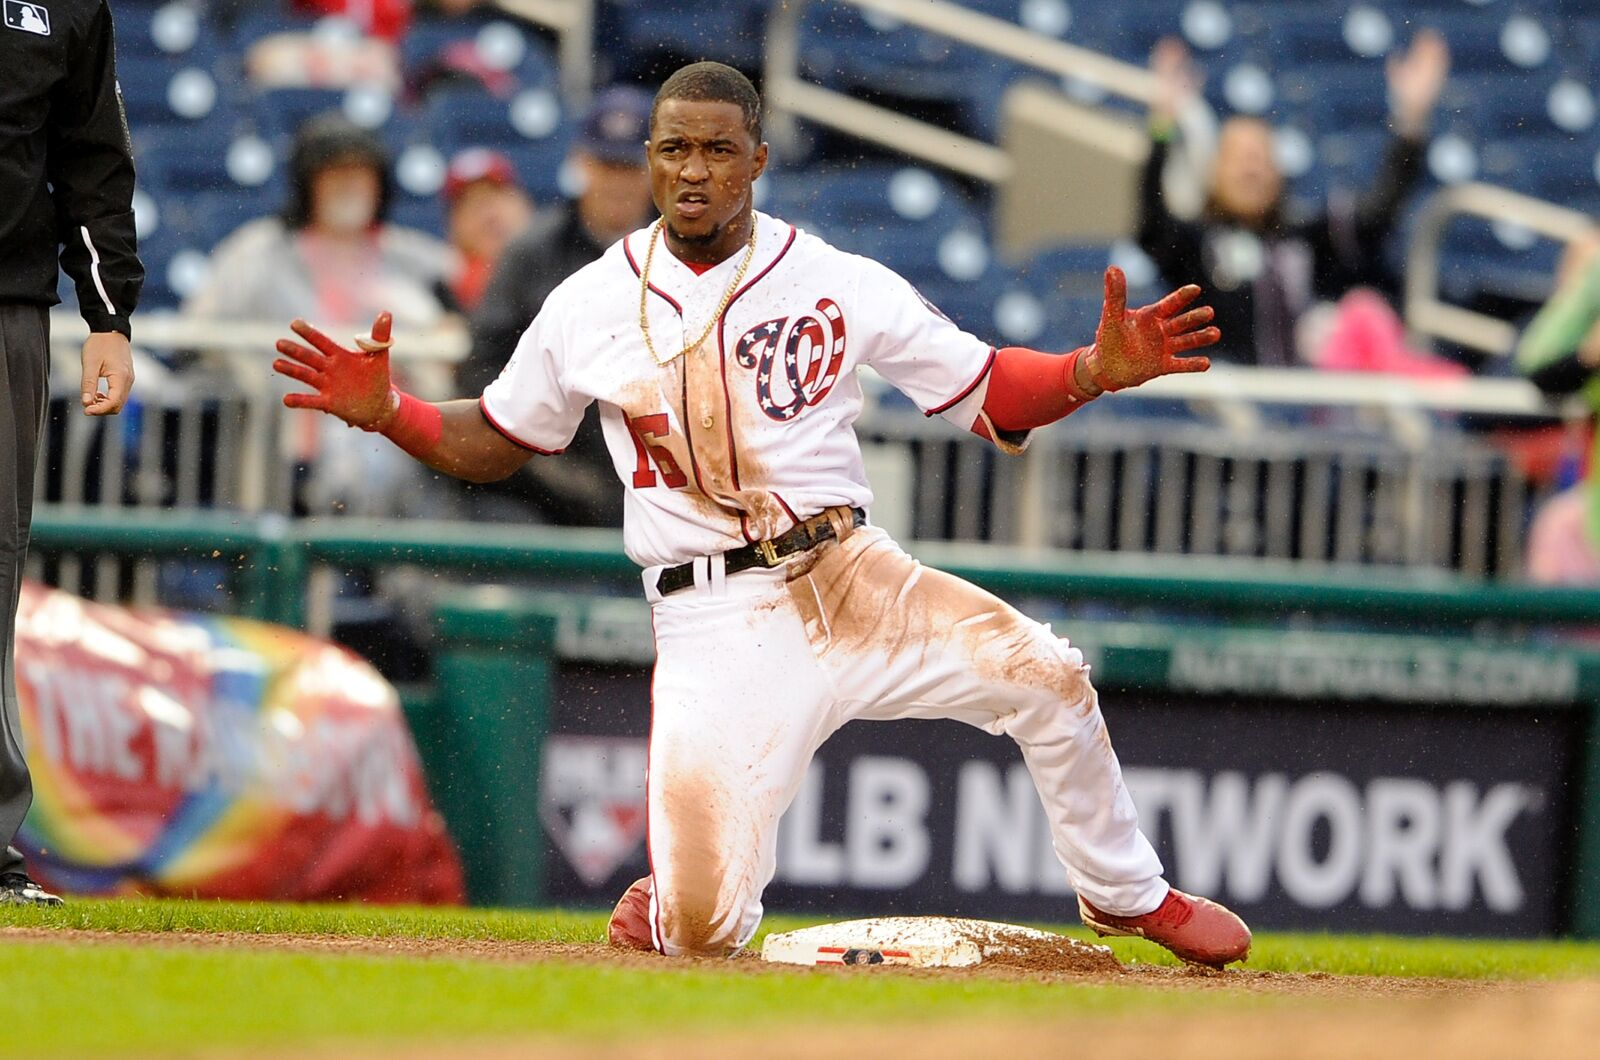 Washington Nationals: Victor Robles is the Starting Center Fielder